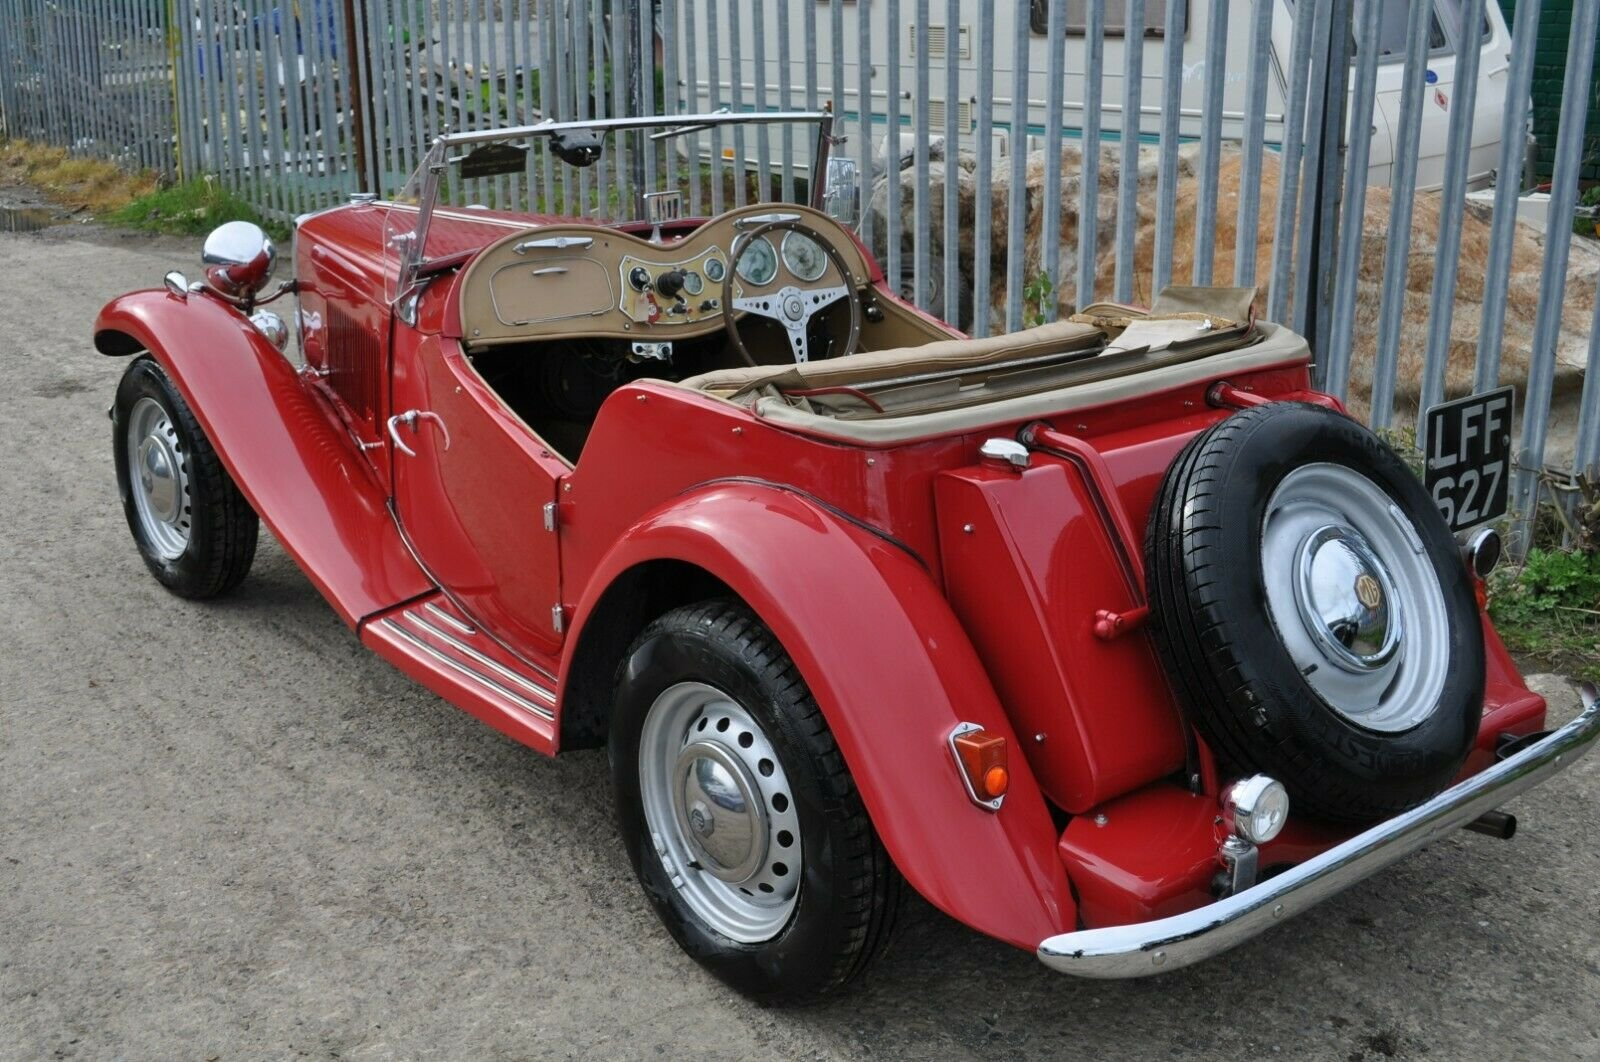 1953 MG TD UK HOME MARKET RHD CLASSIC CAR IN REGULAR USE  SOLD (picture 2 of 6)